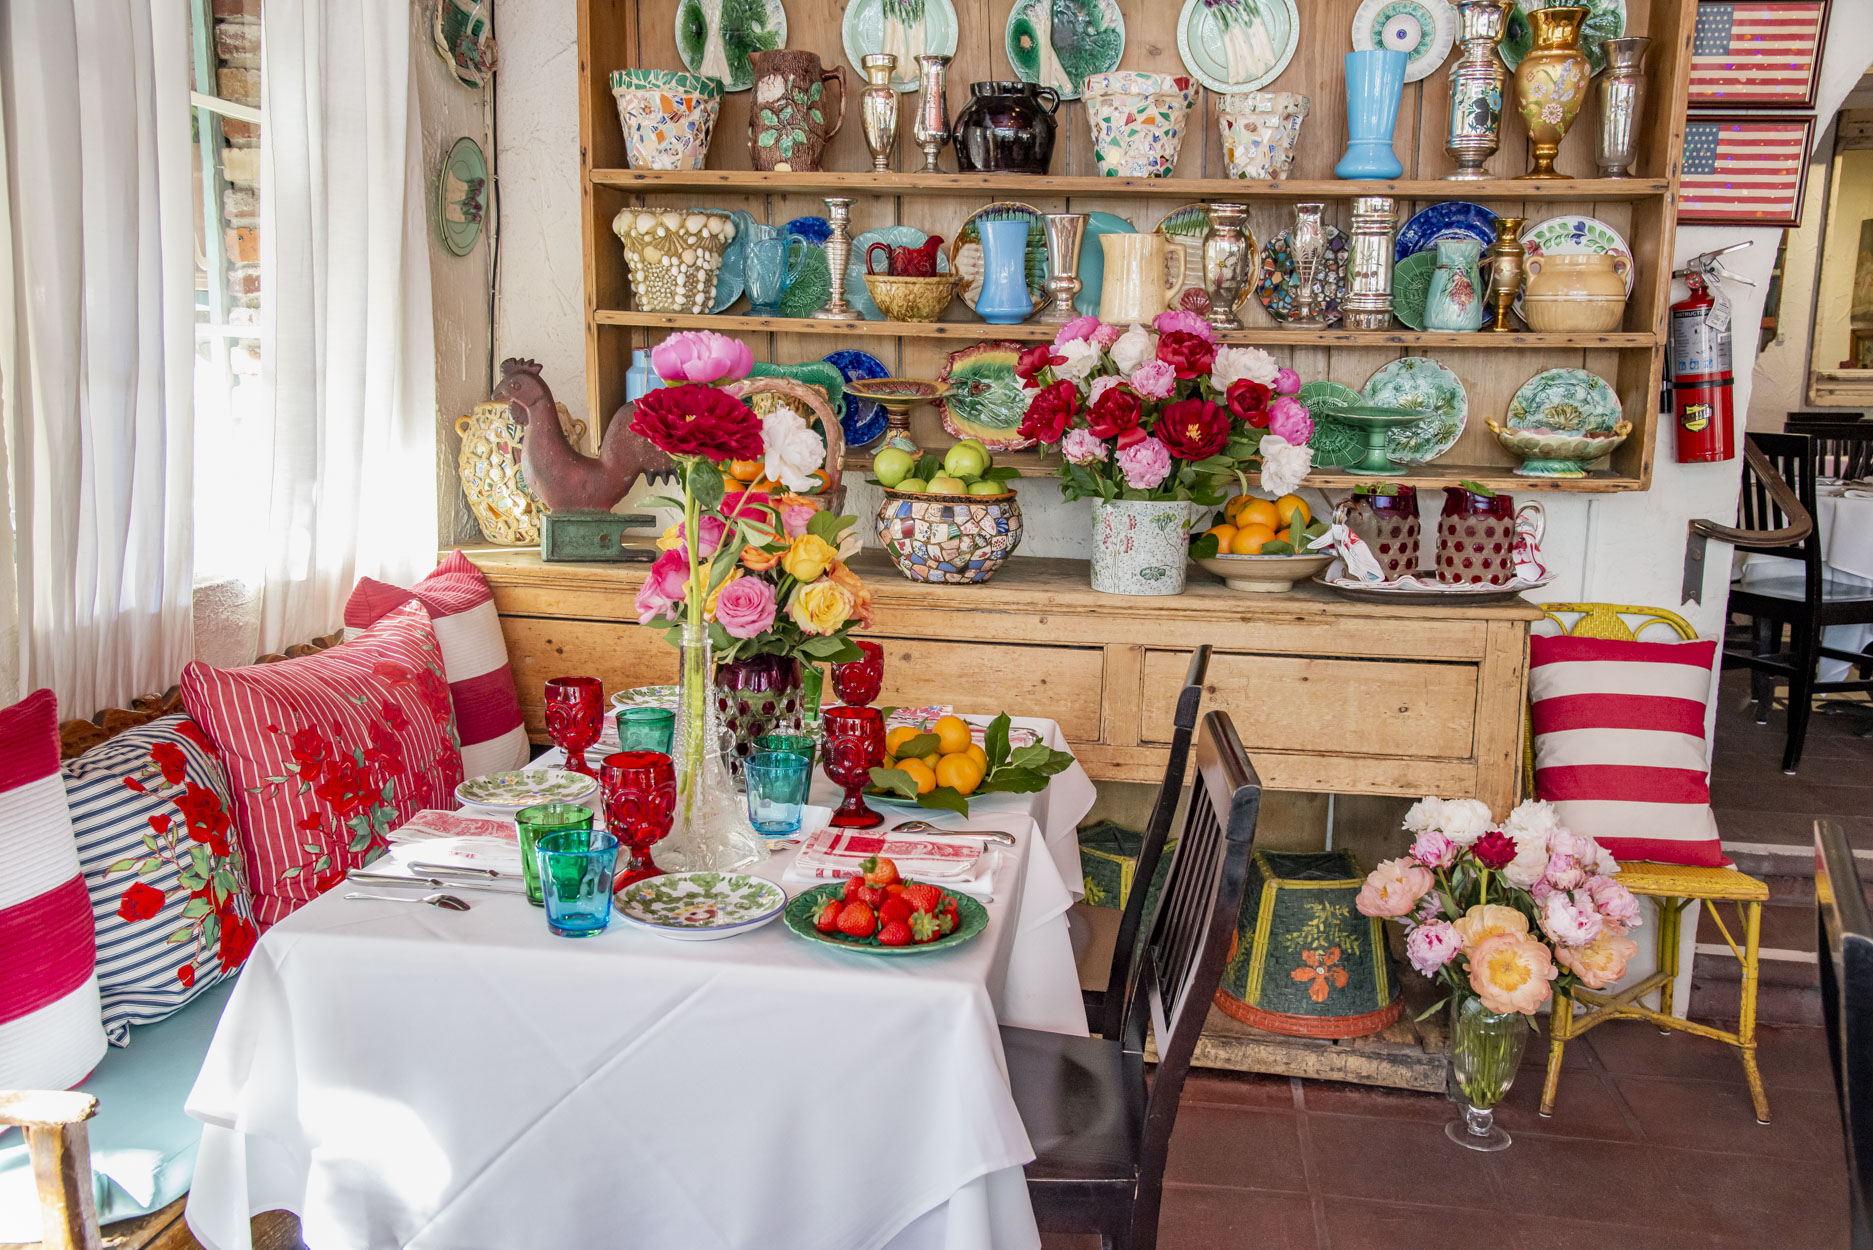 The Ivy Restaurant main room interior, facing an antique Welsh cupboard whos shelves are filled 